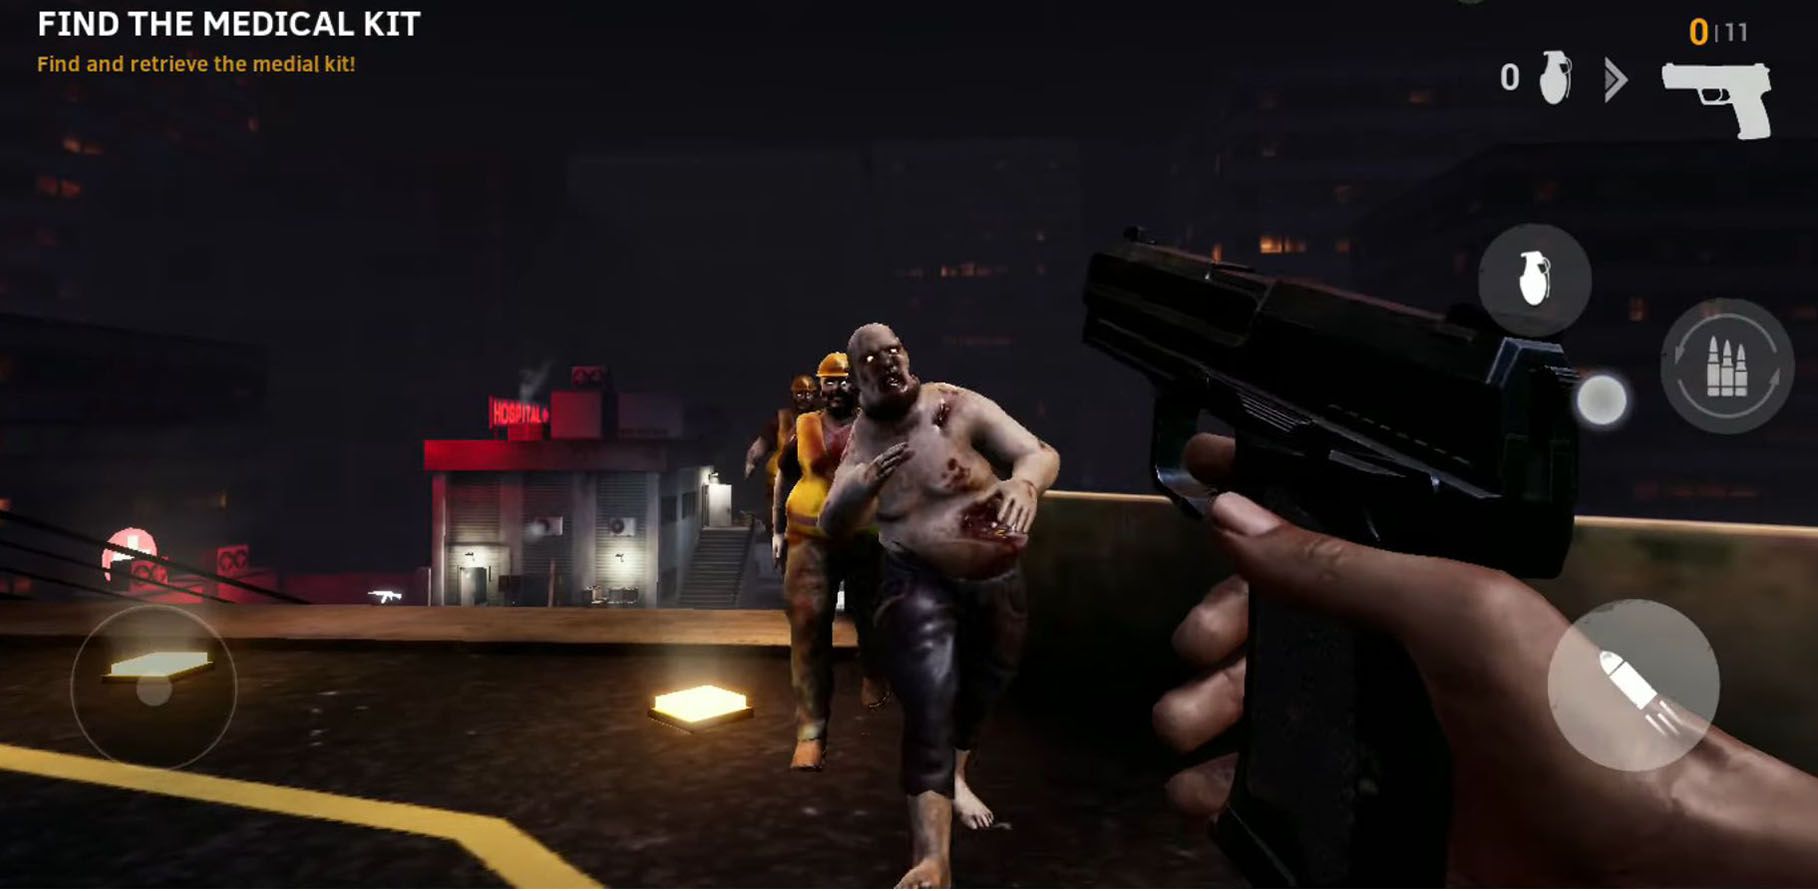 Road to Dead - Zombie Games FPS Shooter for Android